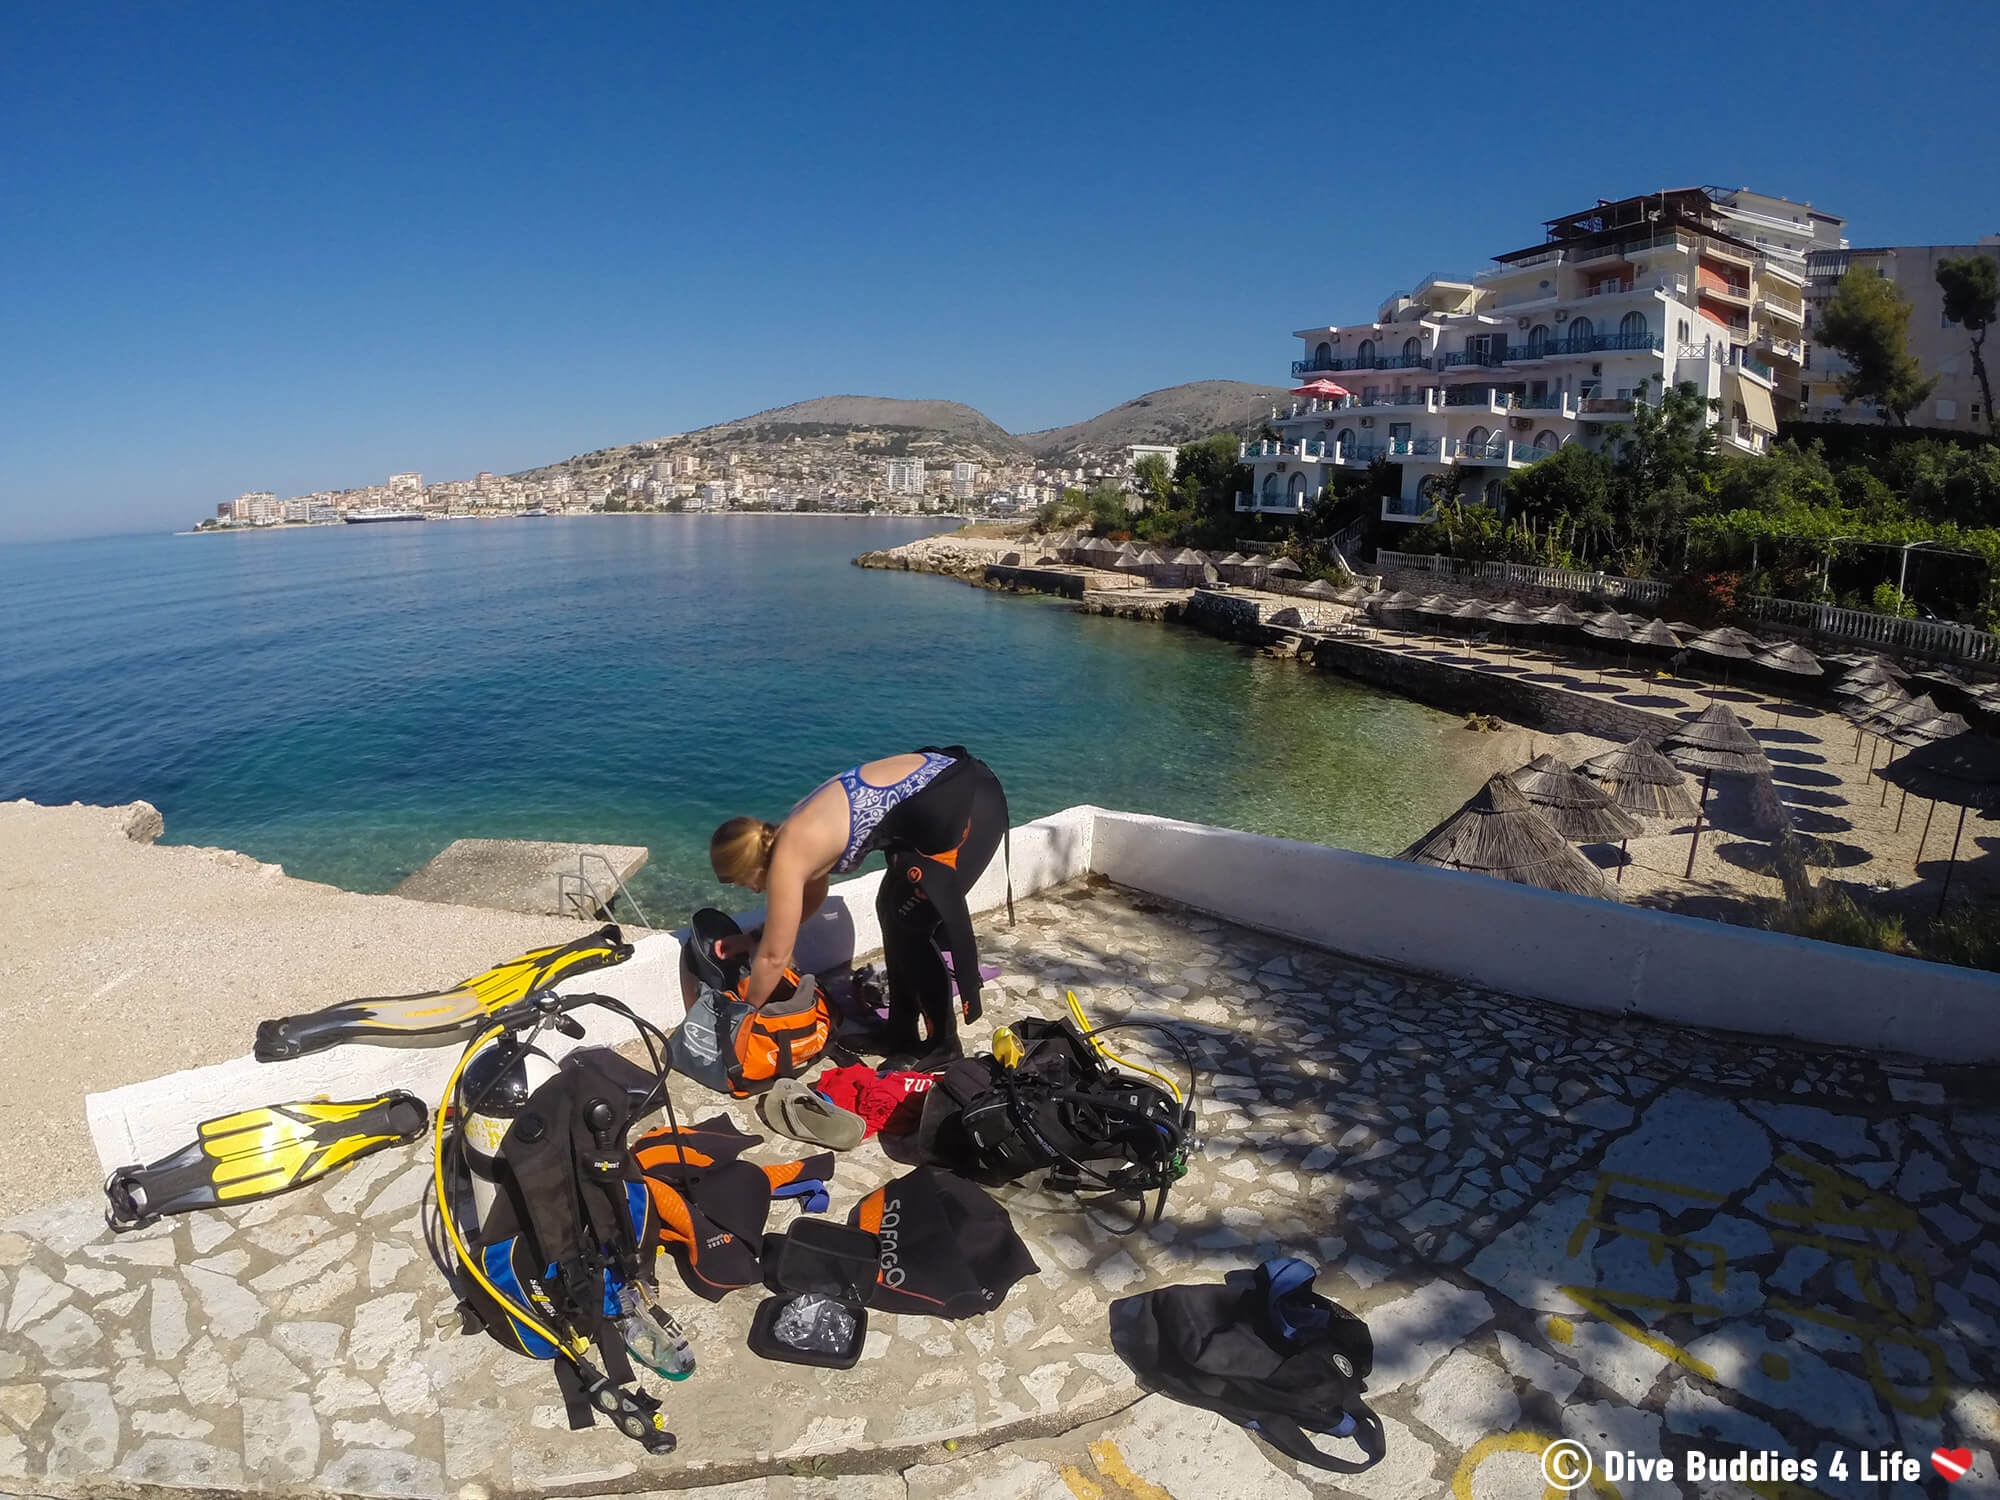 Ali Getting Ready To Go Scuba Diving In The Bay Of Sarandë And Find Some Shipwrecks, Albania, Europe